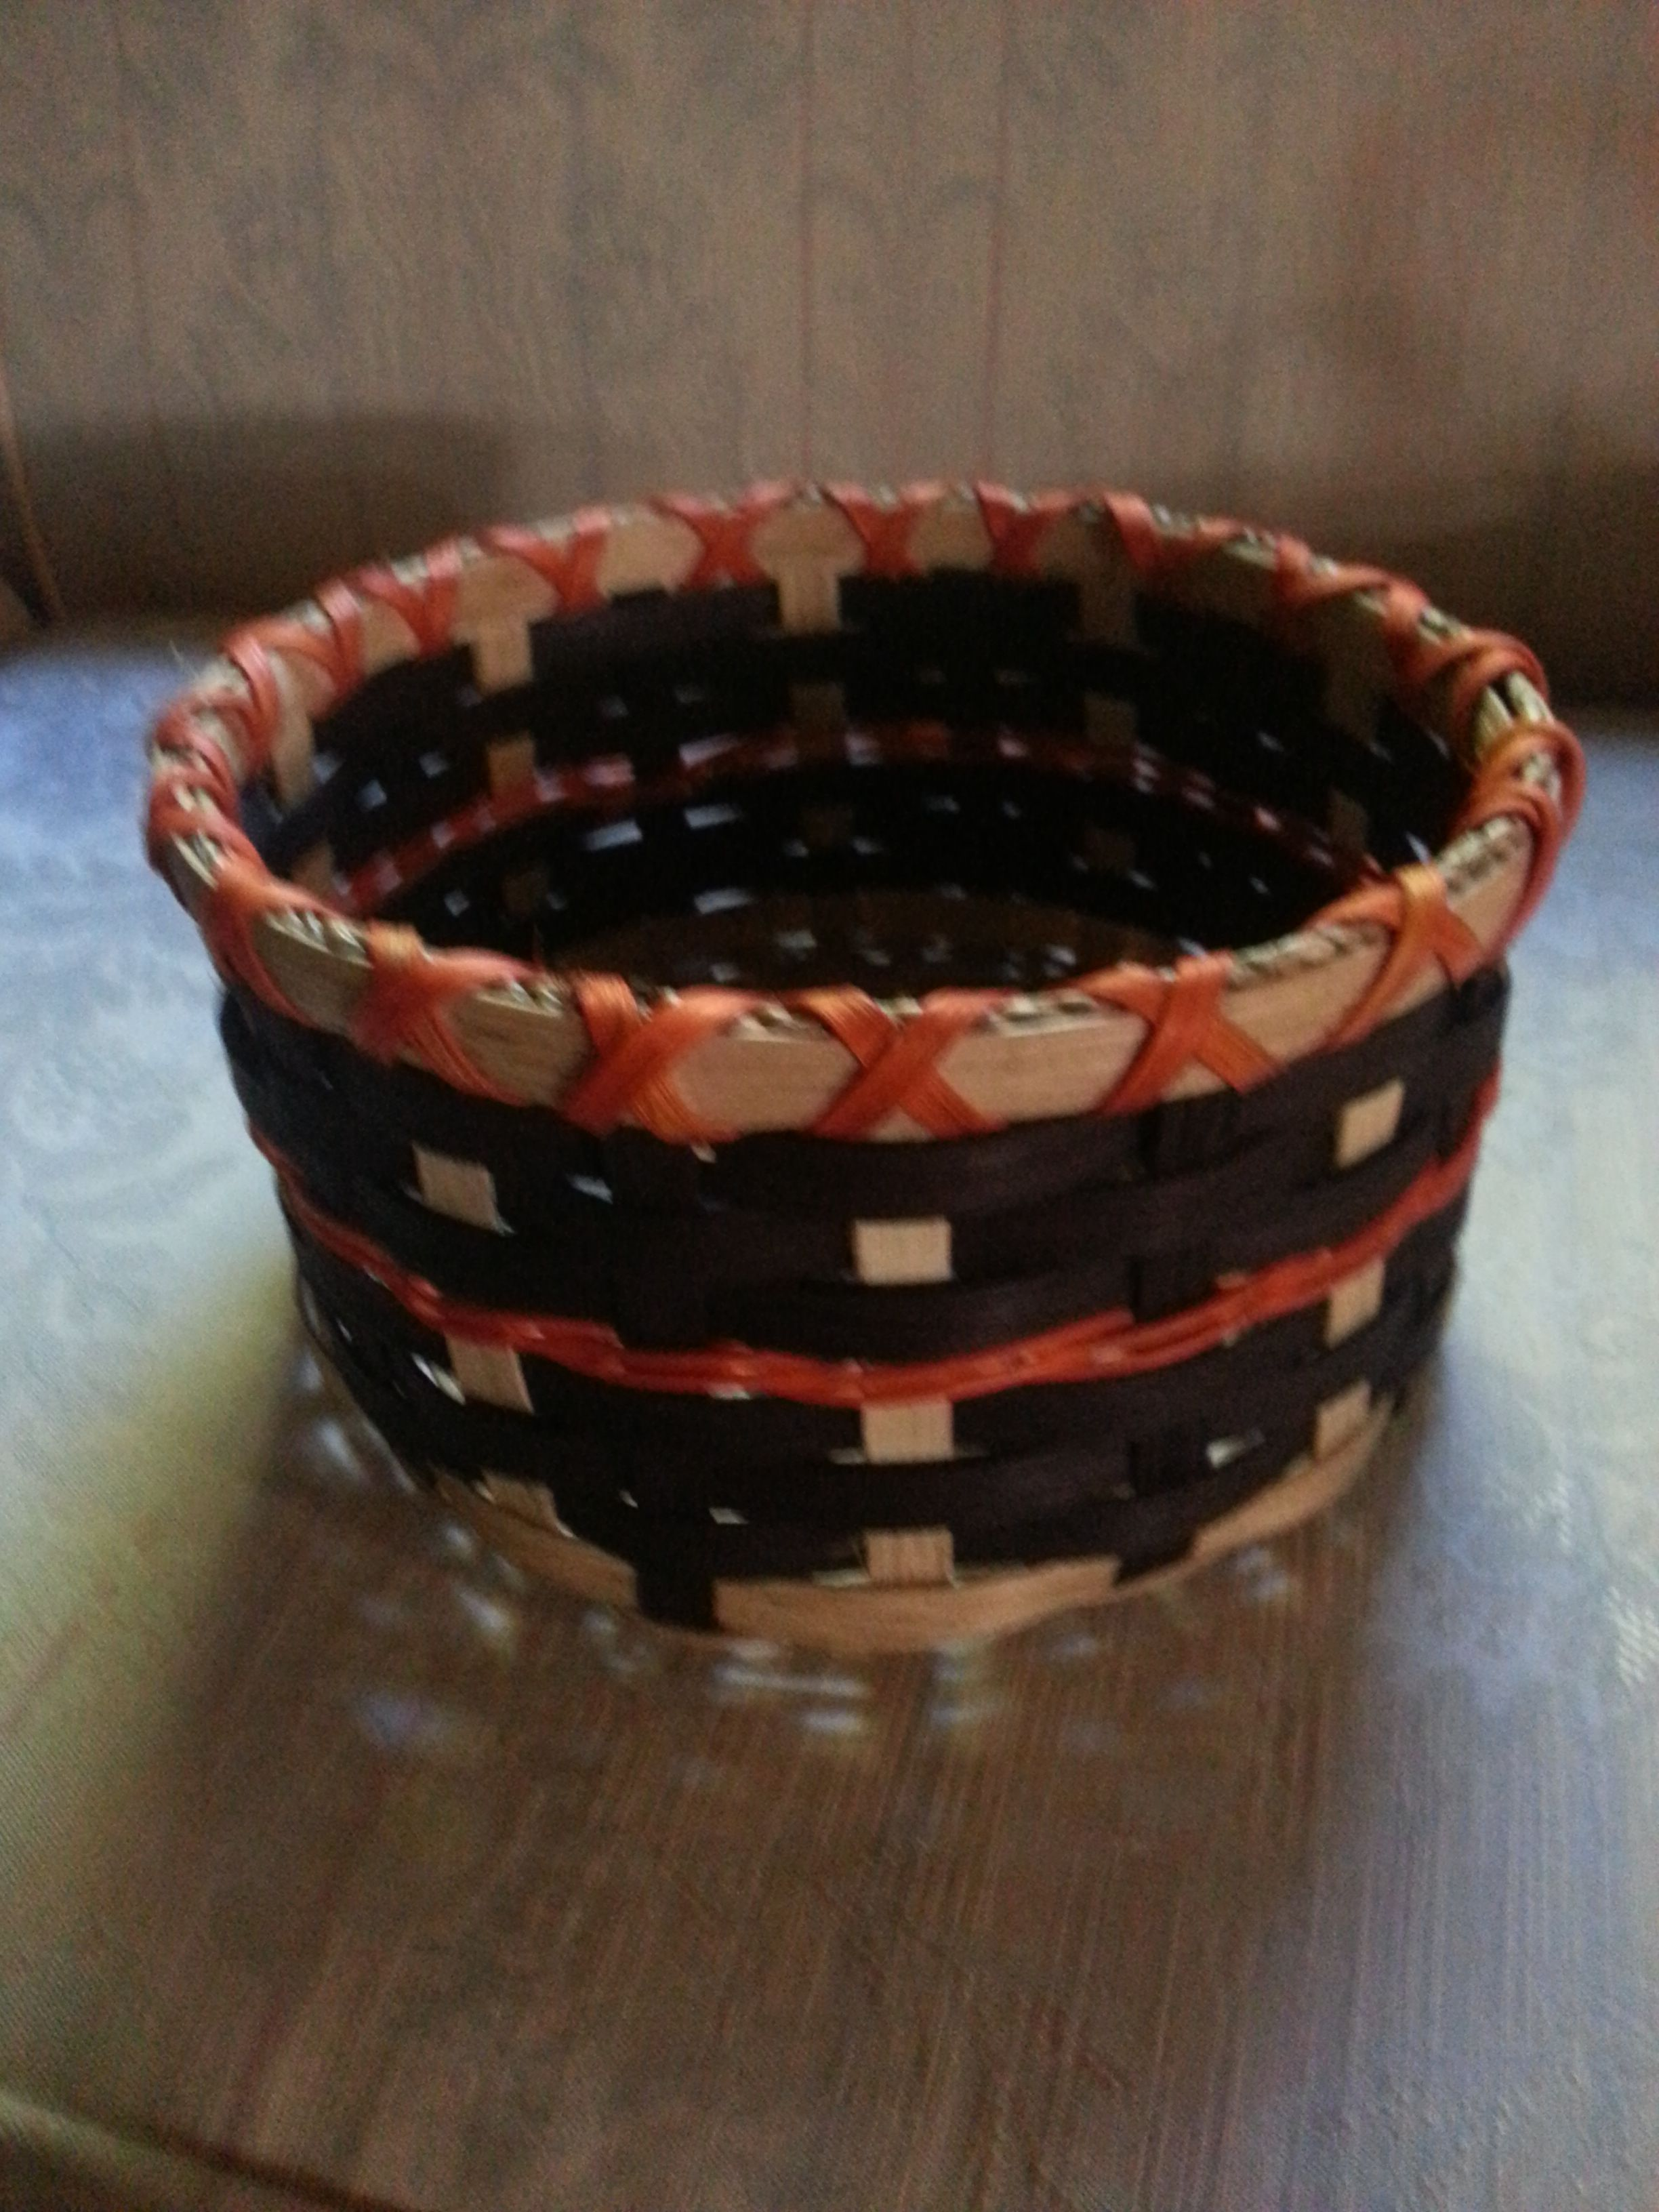 Round Basket Enjoy the darker side? Maybe this color is more for you.